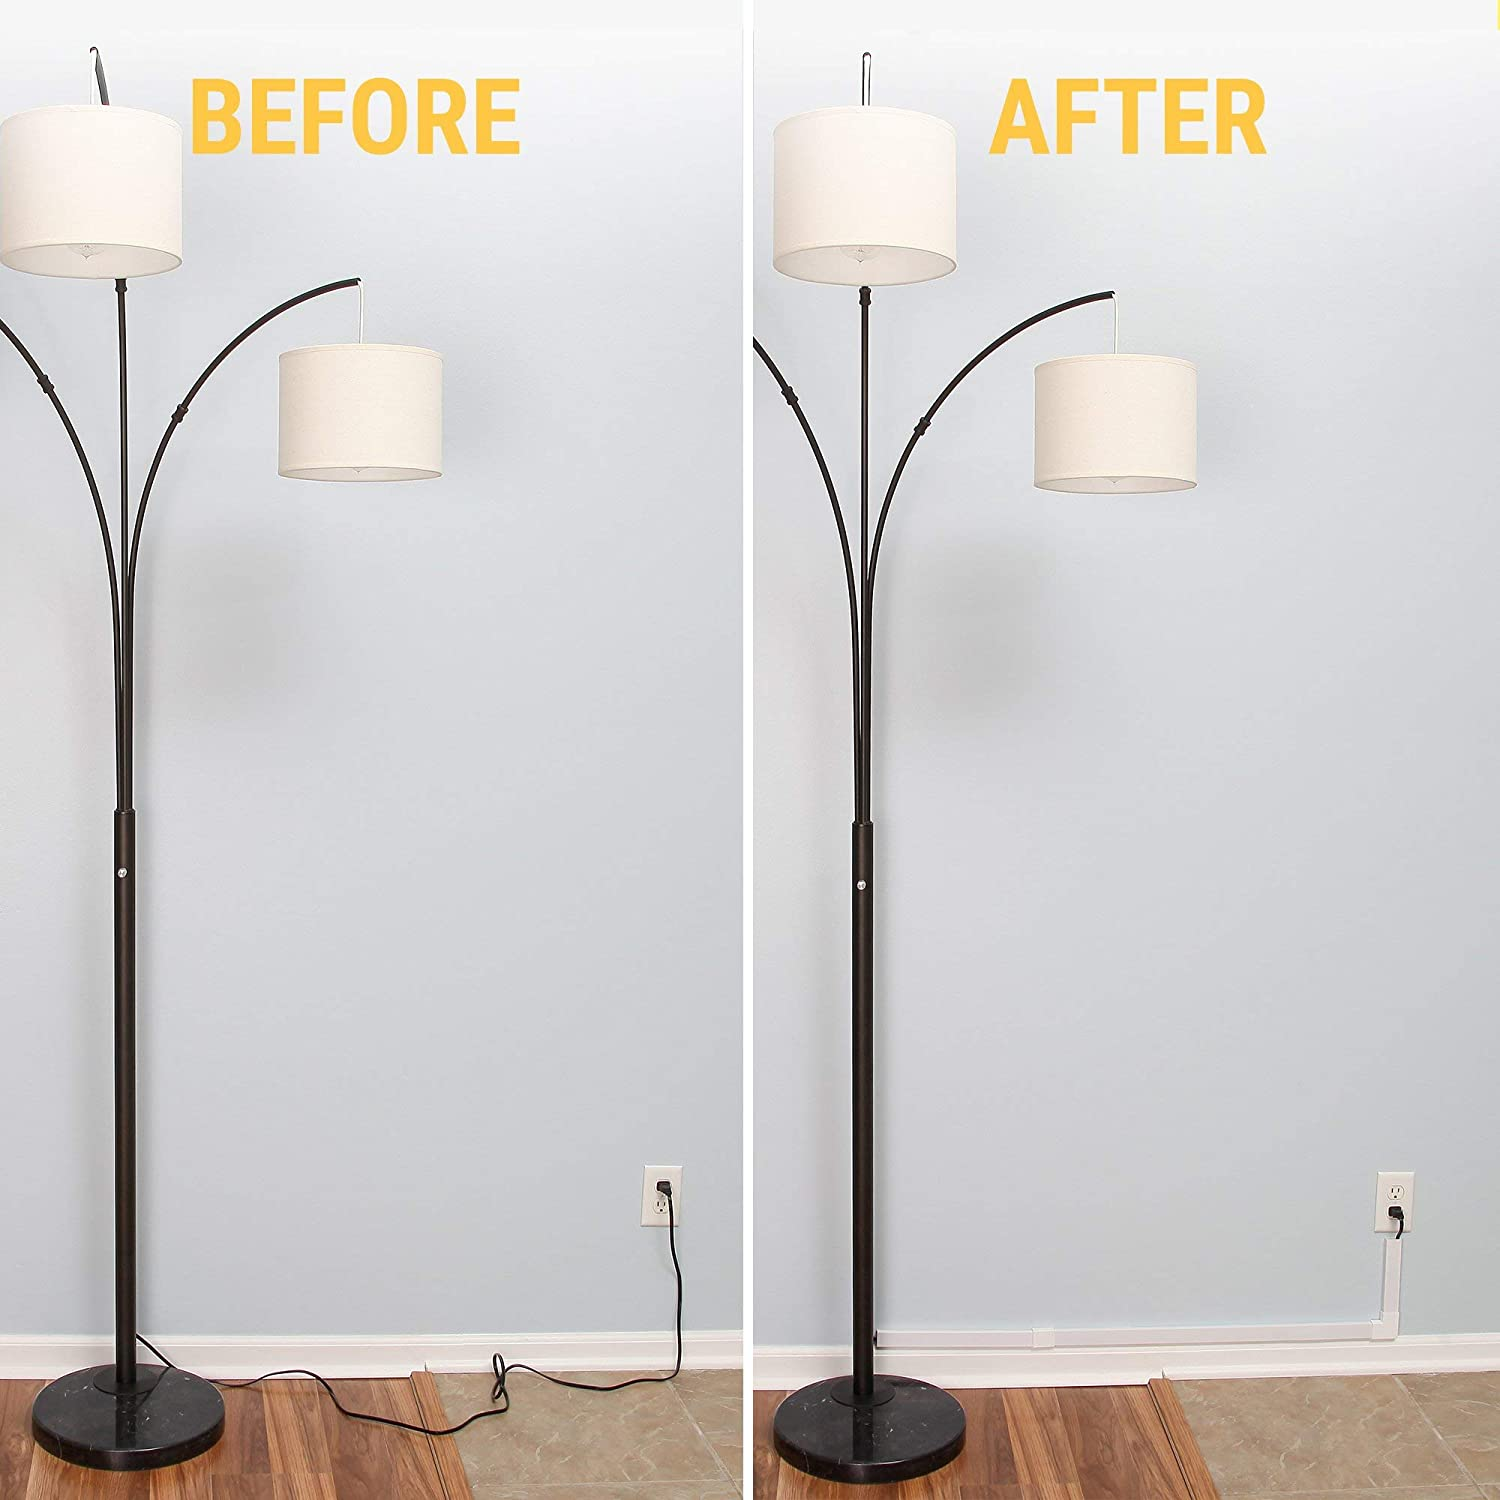 Amazon.com: Simple Cord Cable Concealer On-Wall Cord Cover ...